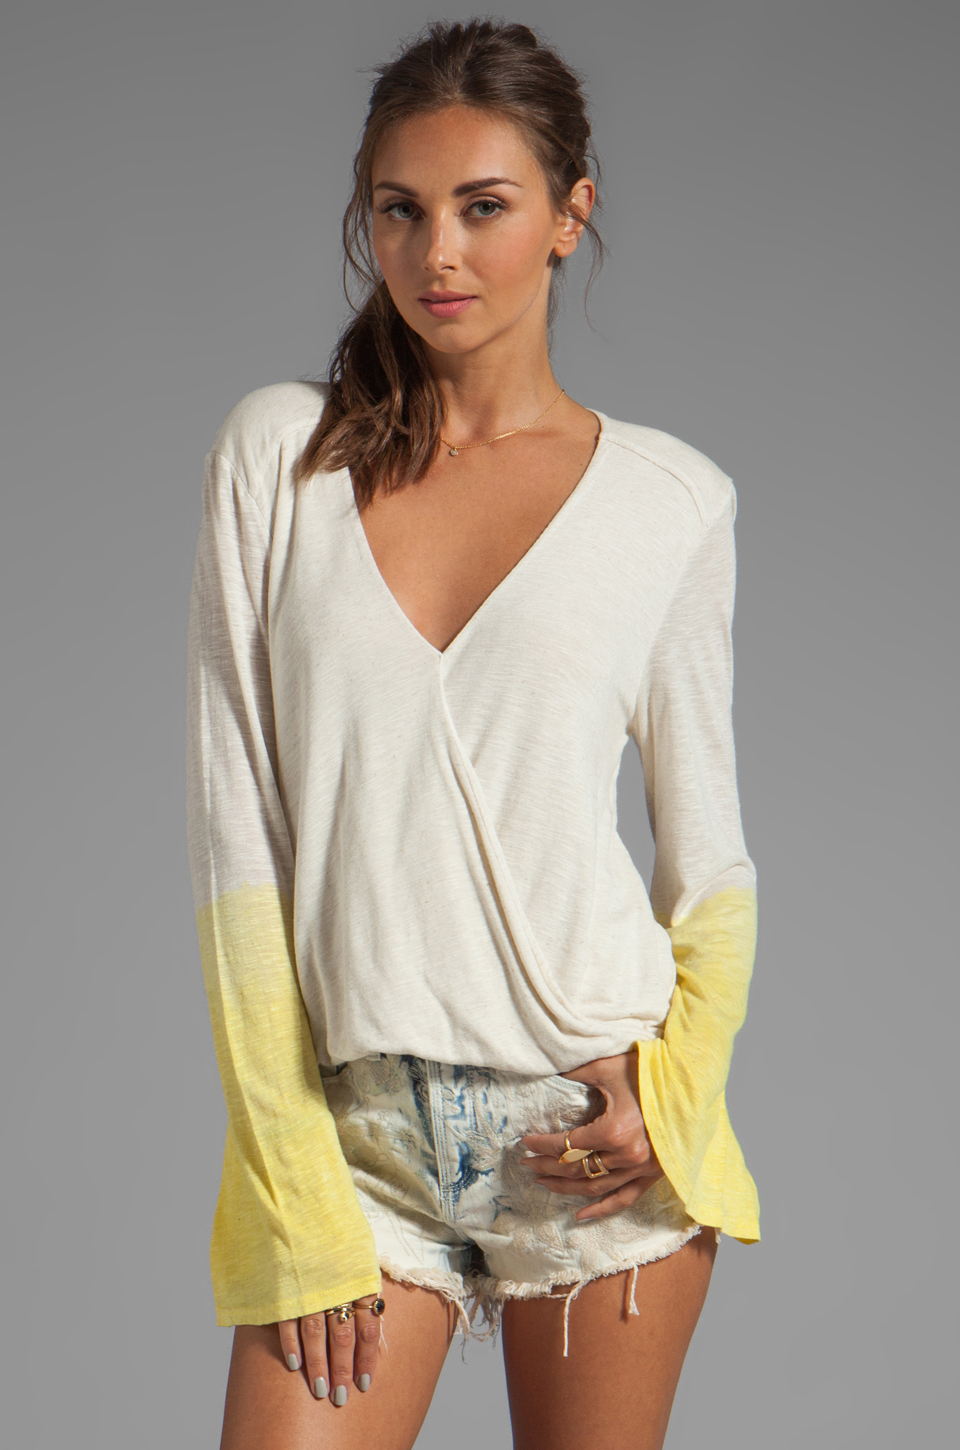 Blue Life Hayley Blouse in Sunfade